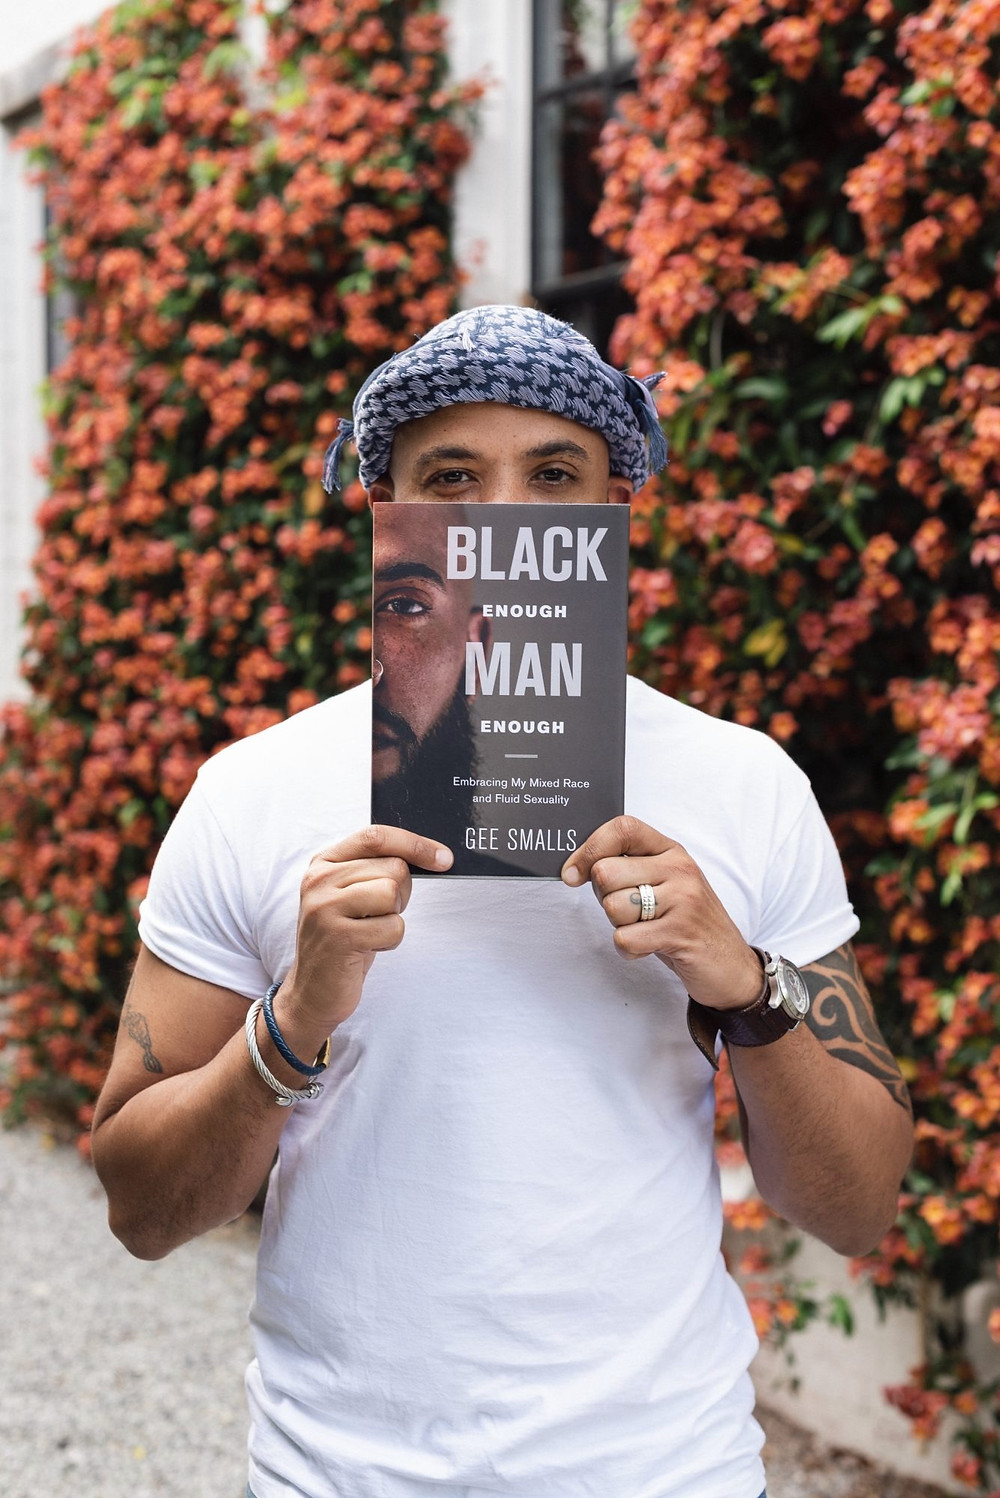 Black Enough Man Enough book